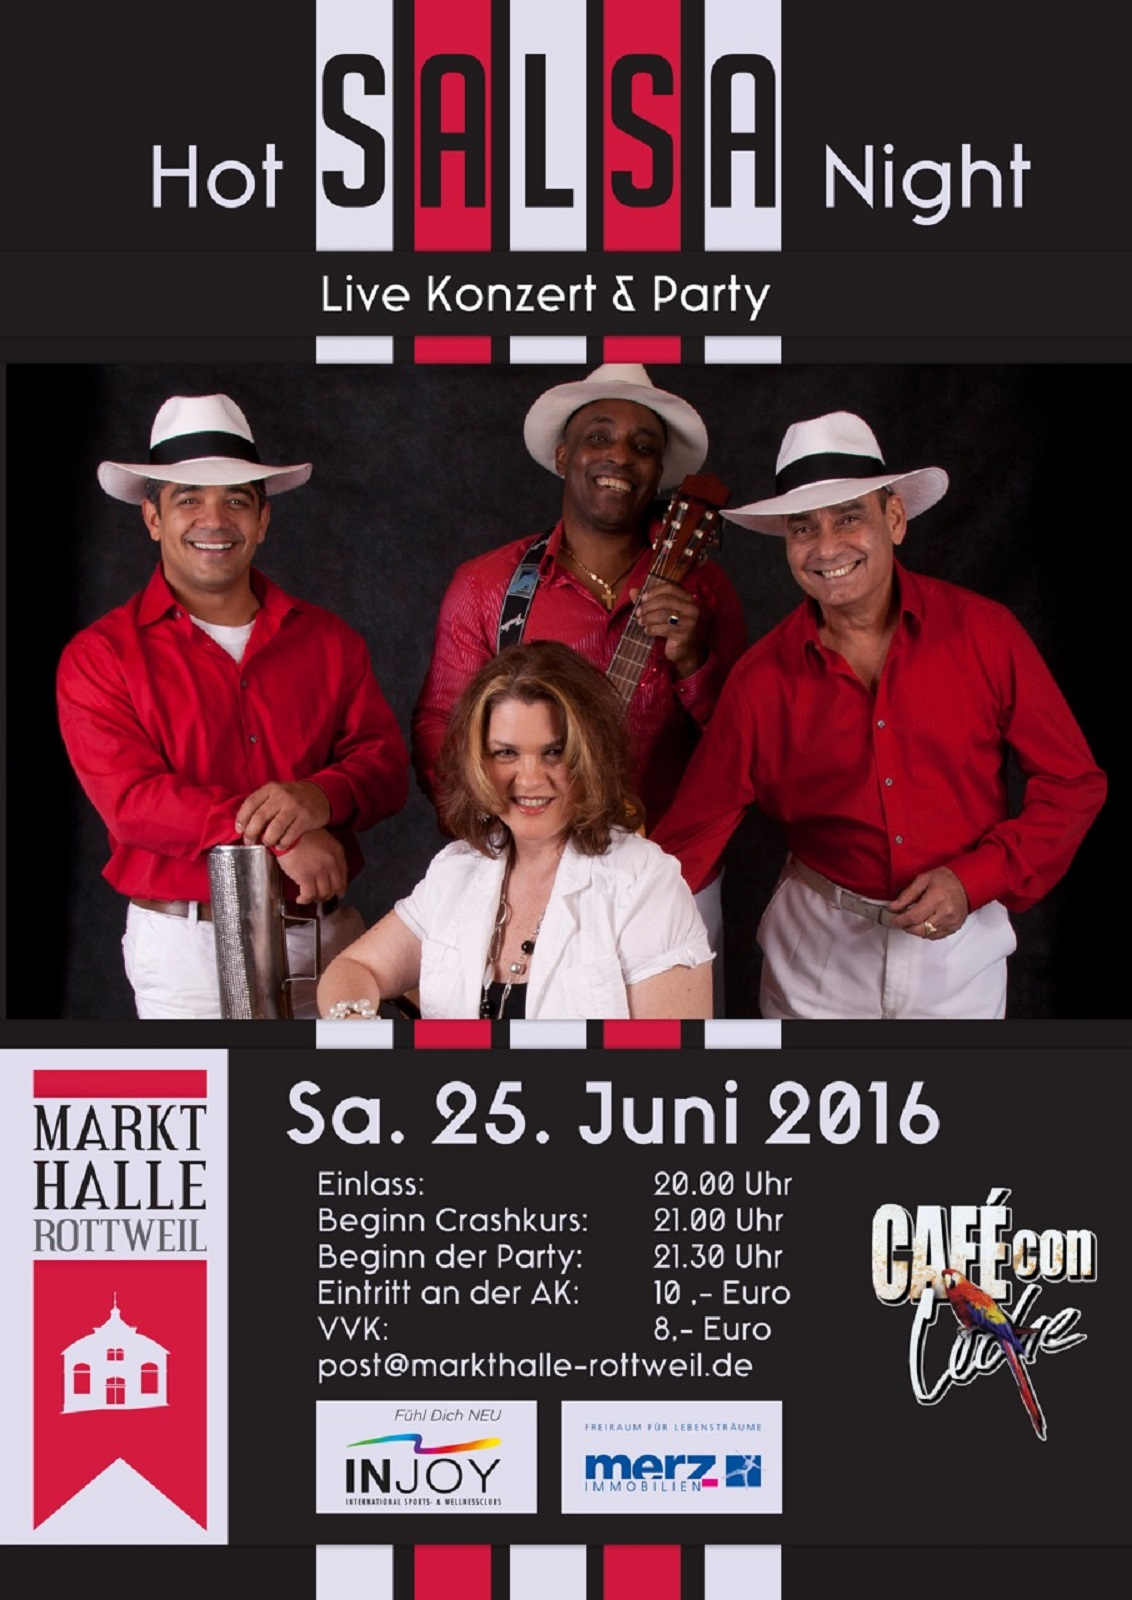 HOT SALSA NIGHT mit CAFÉ CON LECHE in der MARKTHALLE ROTTWEIL in Rottweil